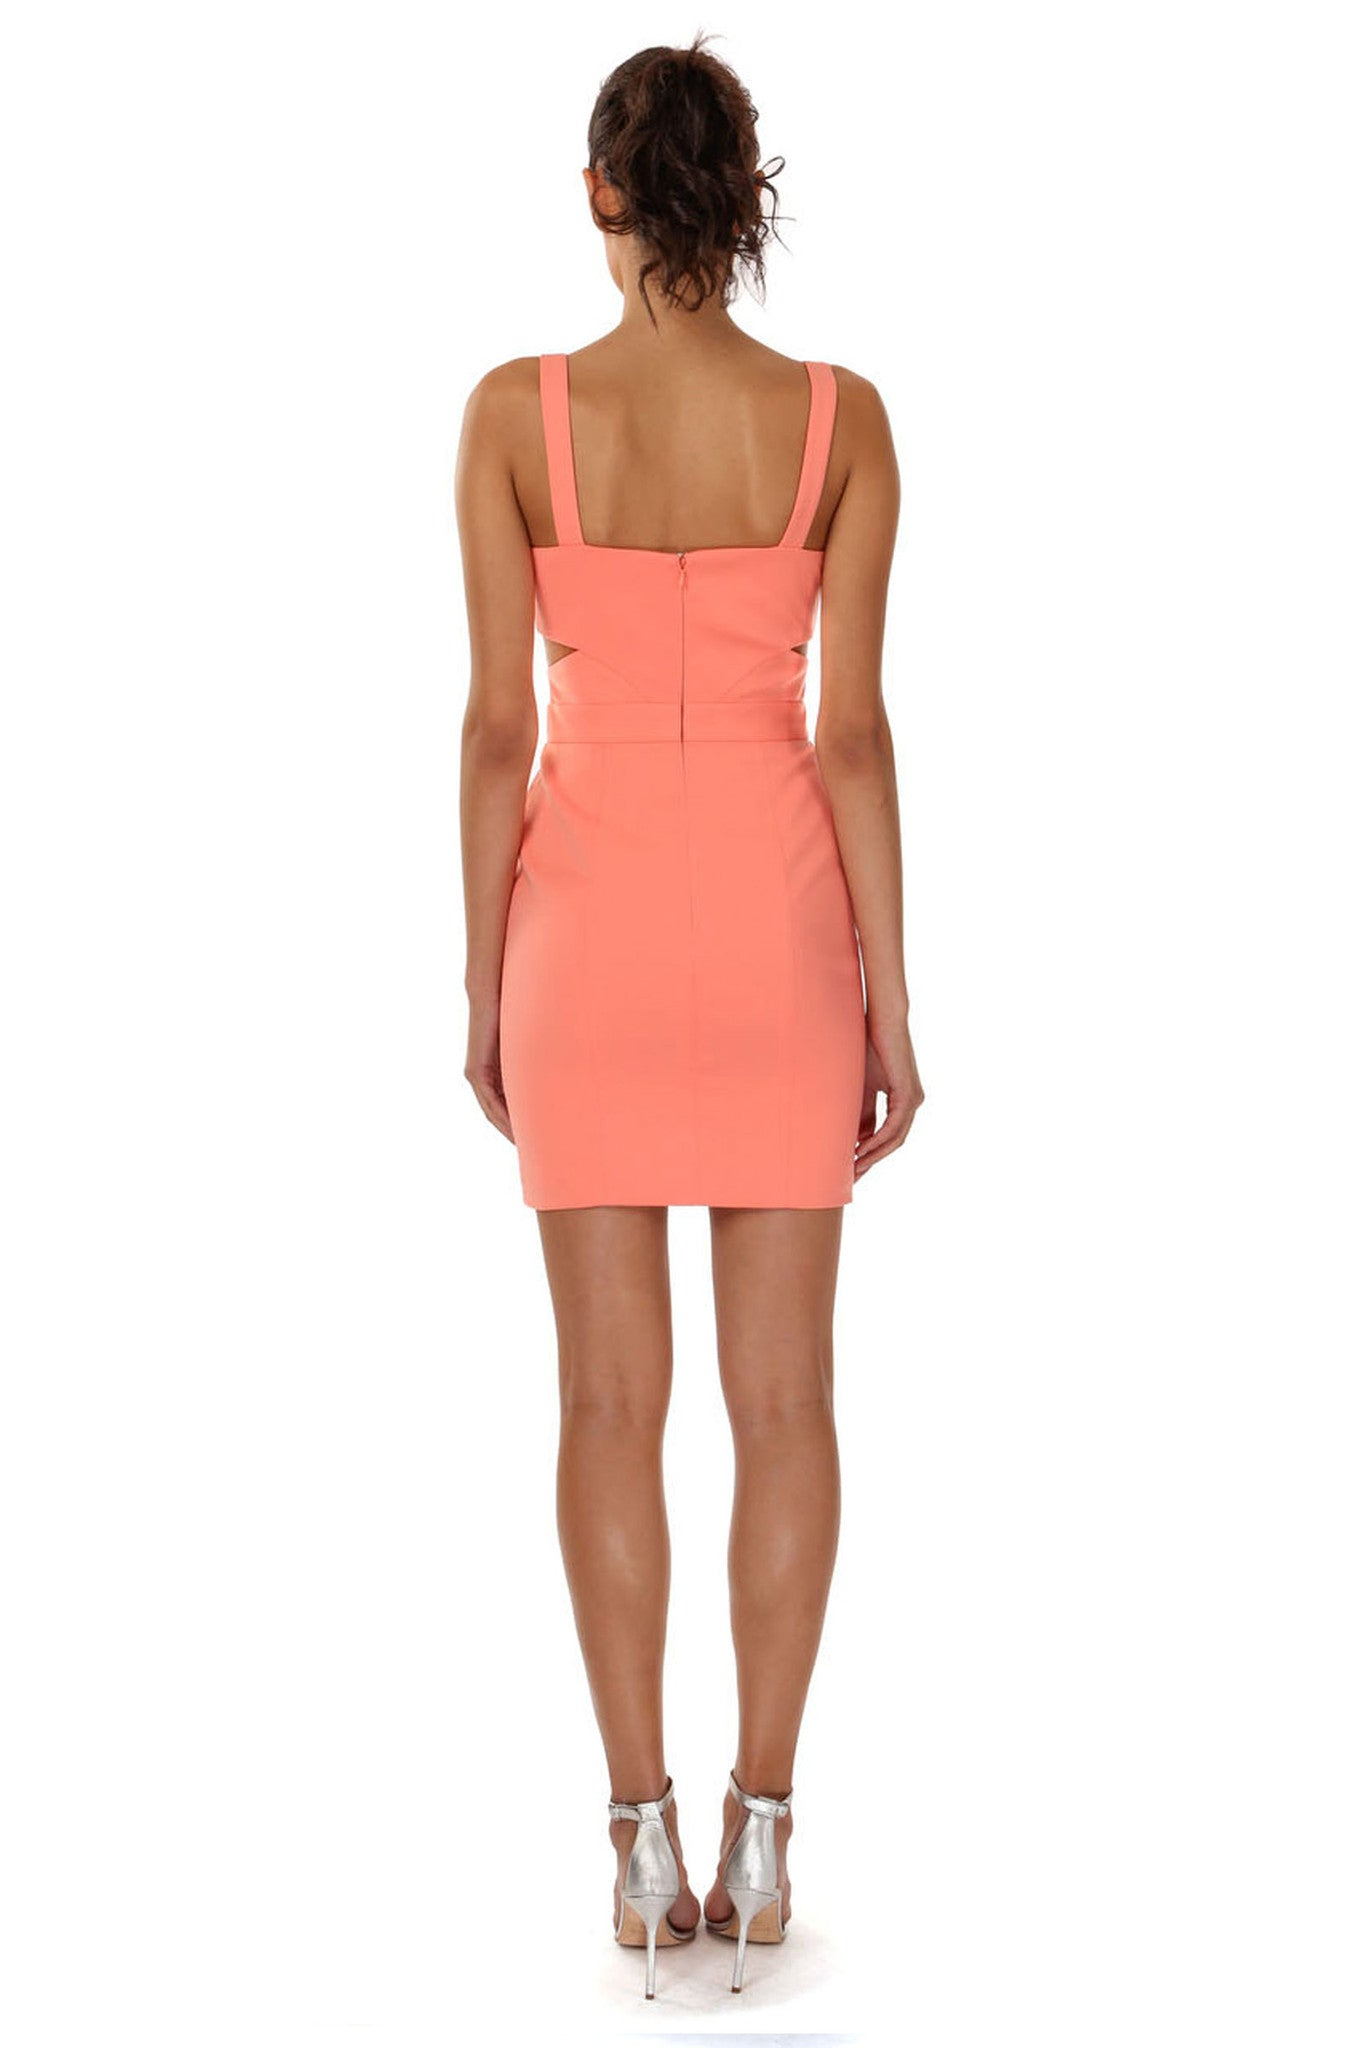 Jay Godfrey Orange Cross Front Mini Dress - Back View